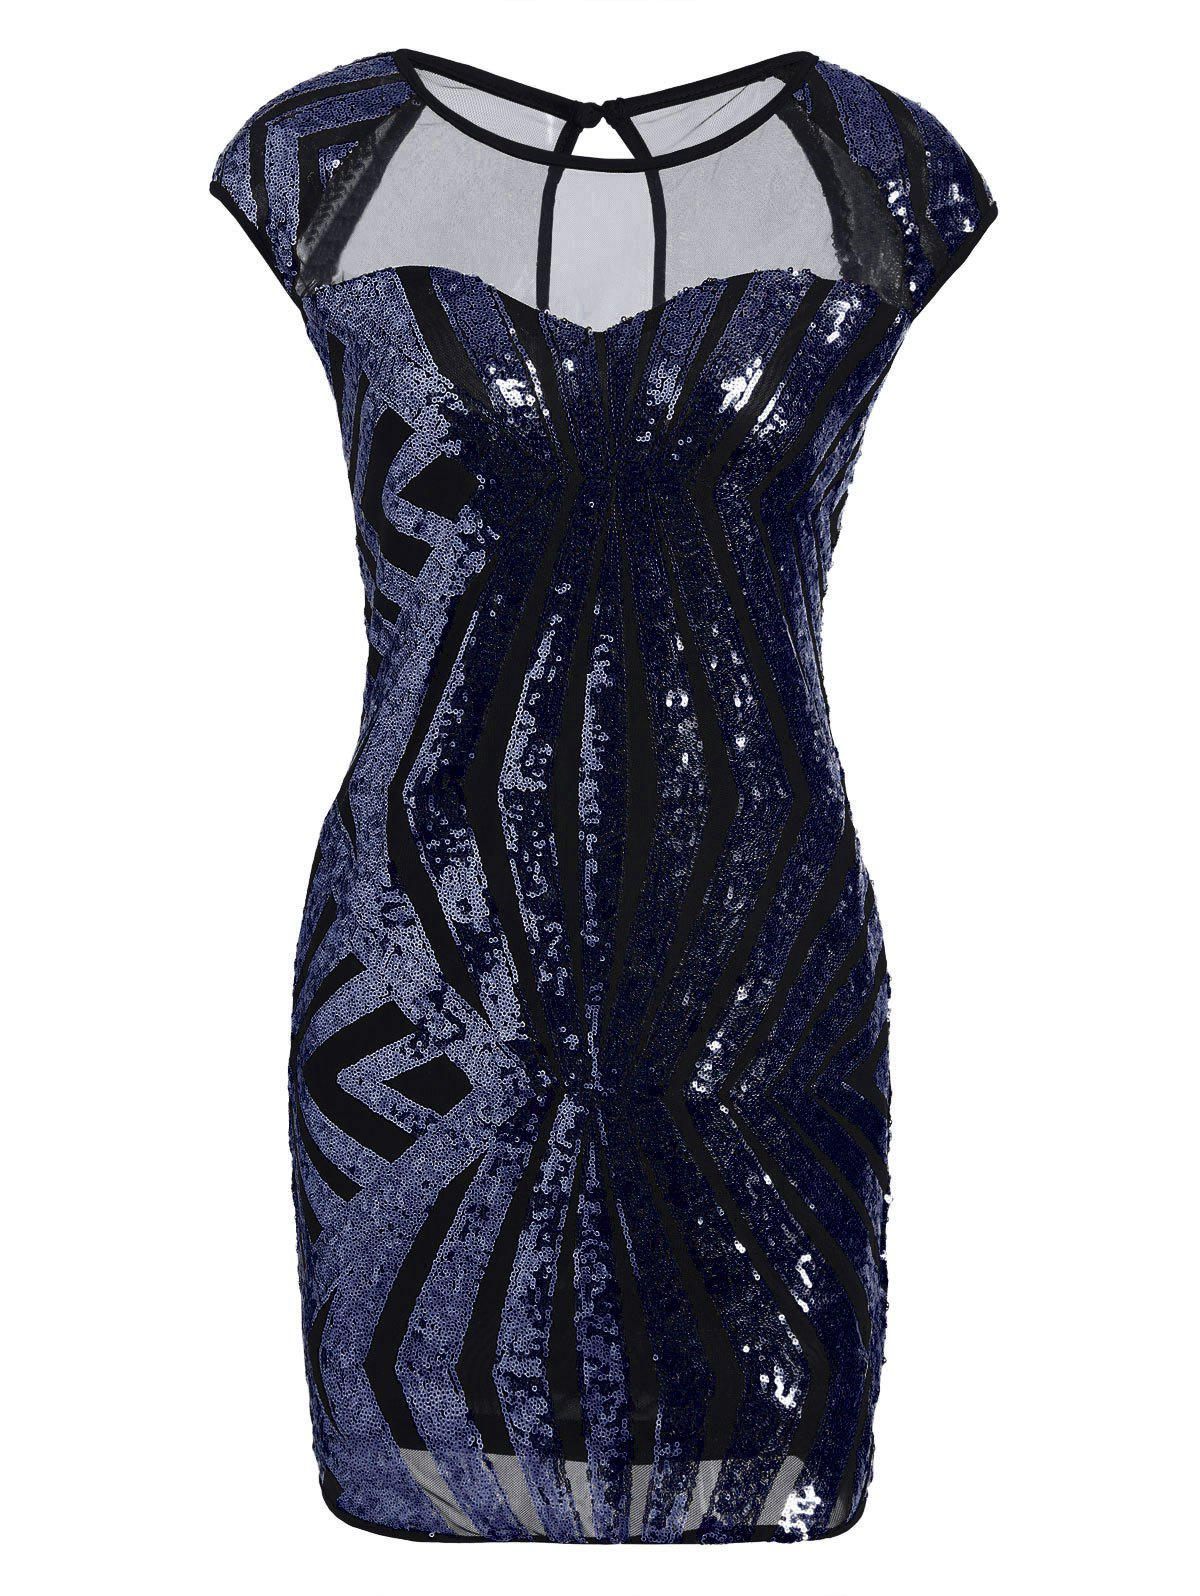 Mesh Insert Sequin Bodycon Club Dress - BLUE XL